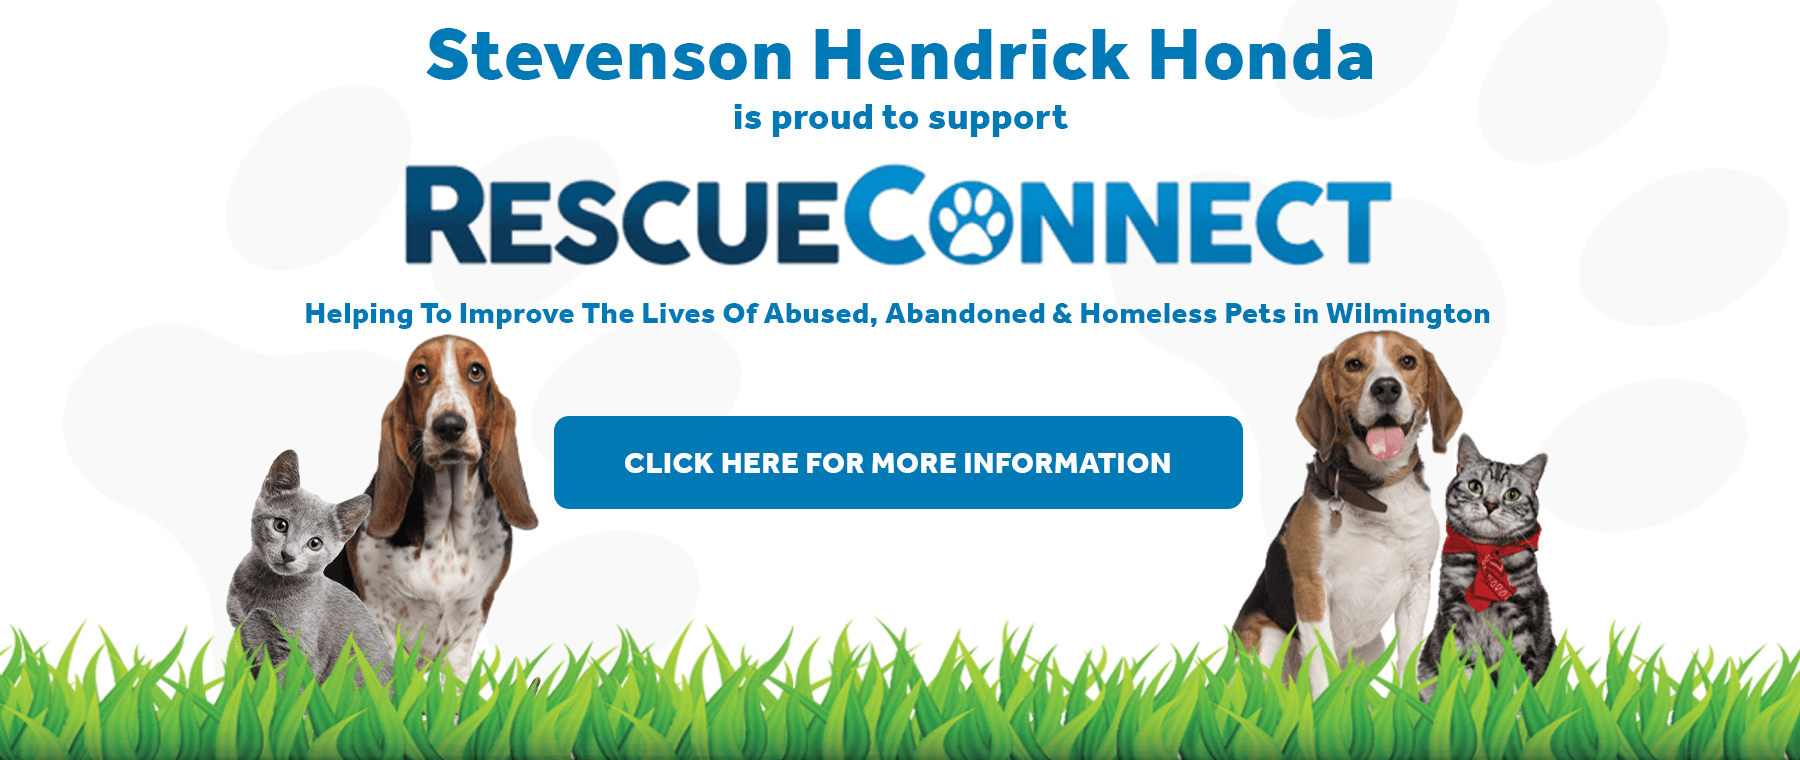 Stevenson Hendrick Honda supports Rescue Connect